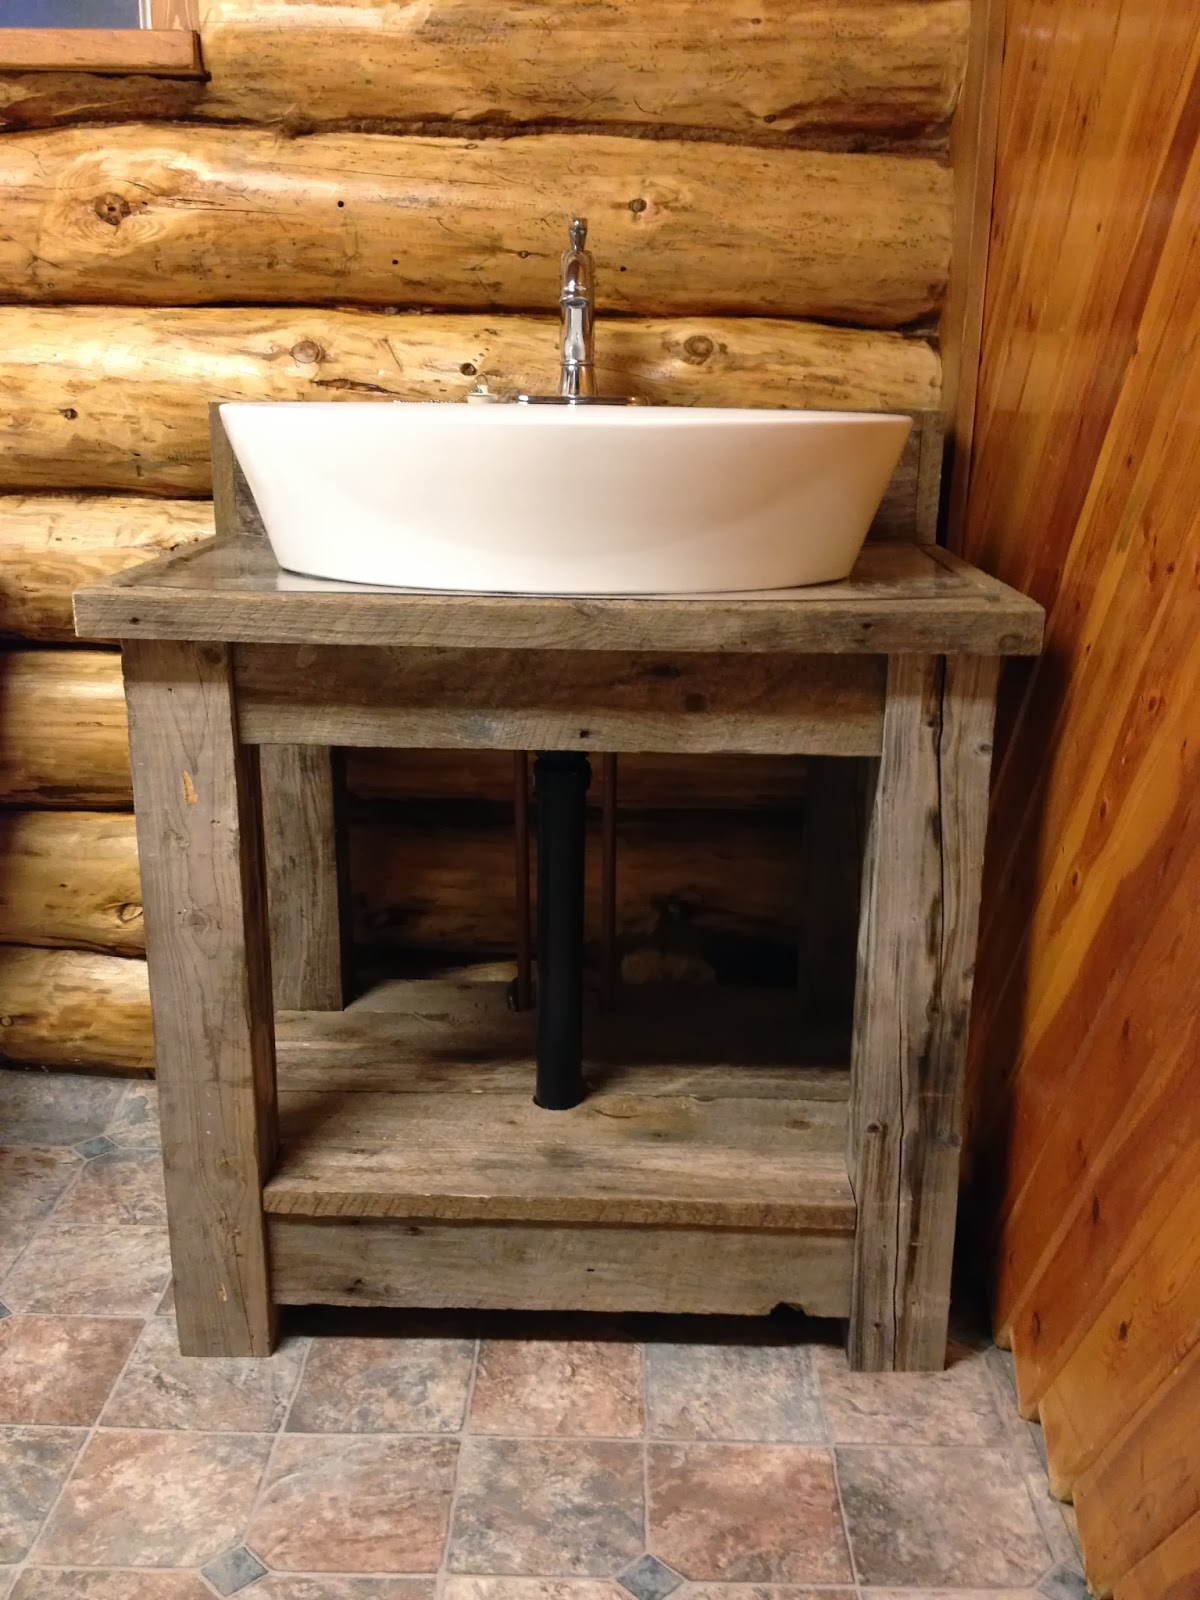 MacGIRLver: Reclaimed Wood Bathroom Vanity